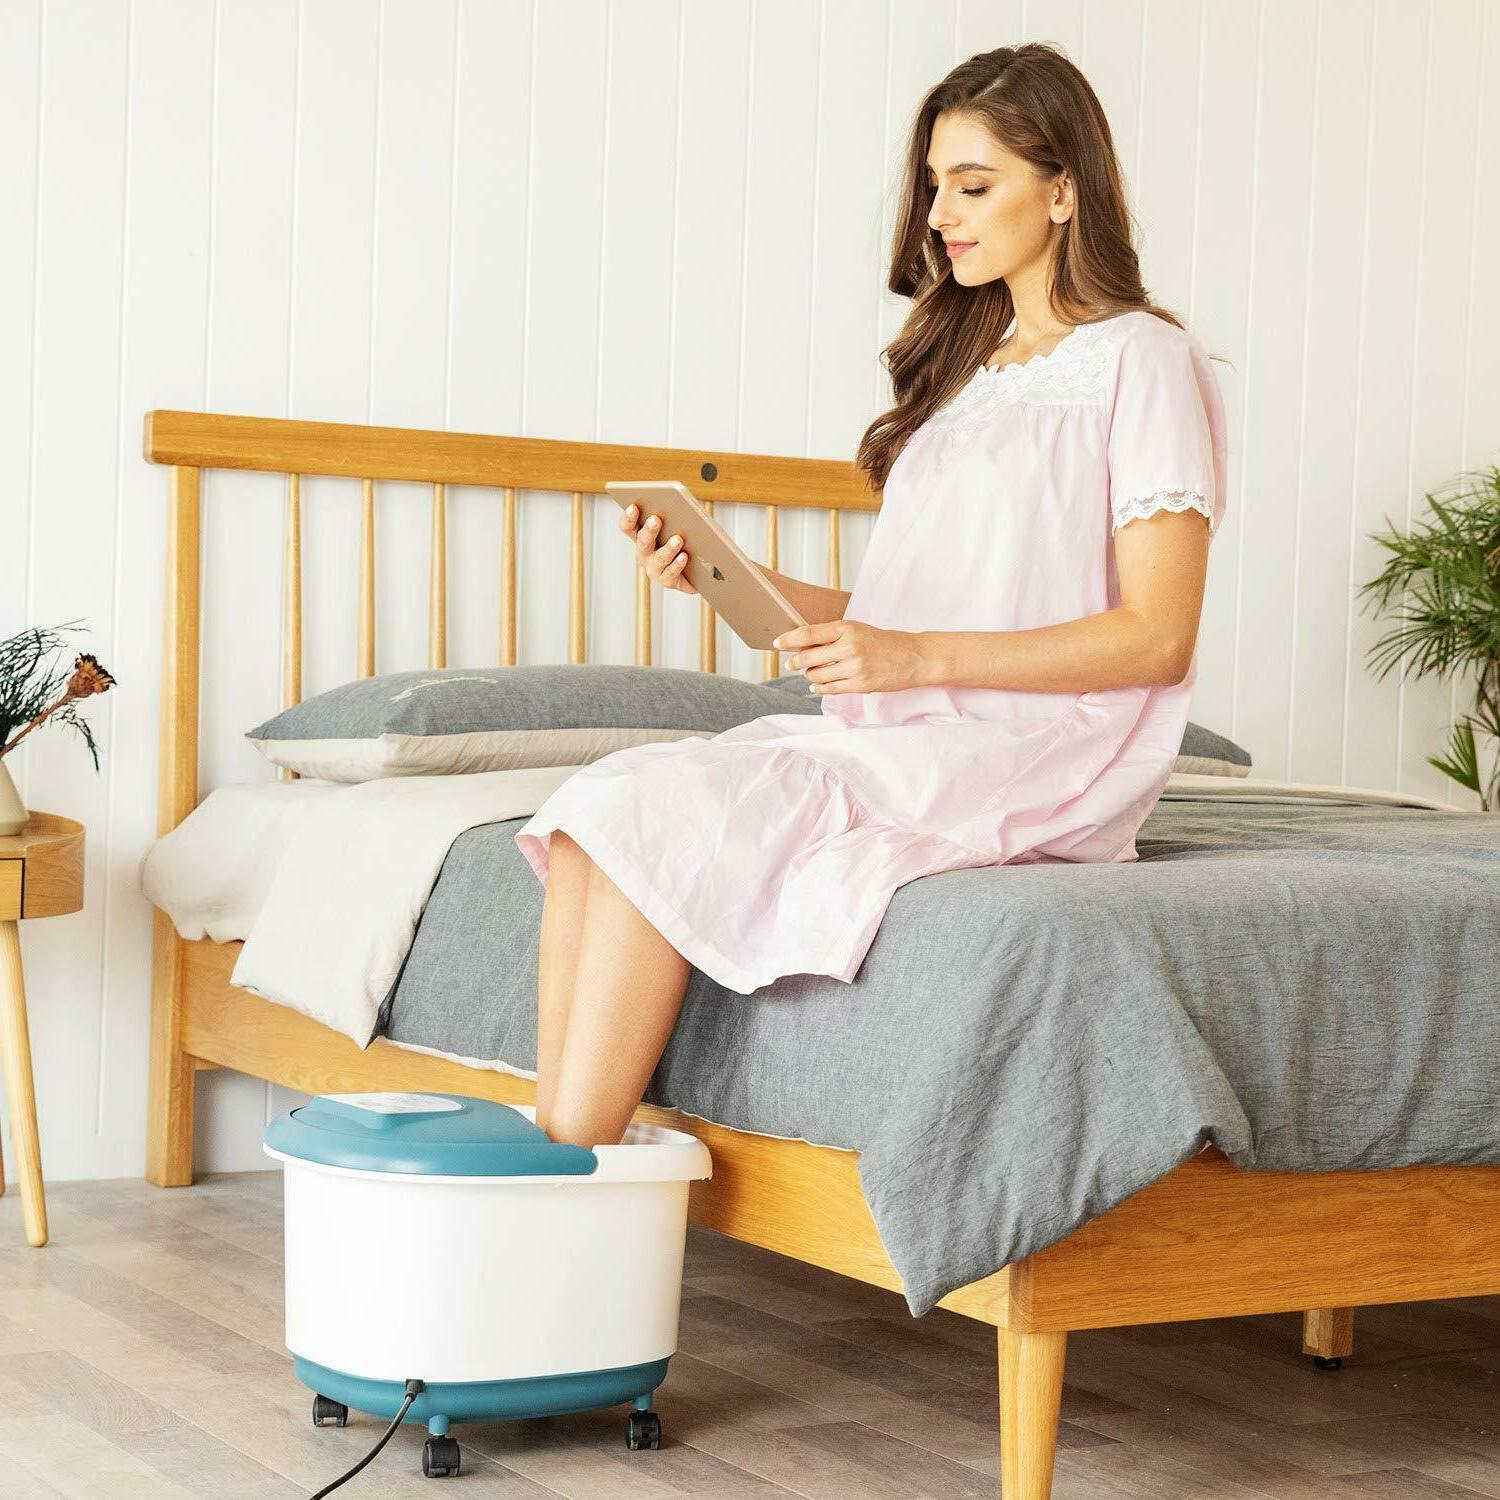 Home Use Foot Bath LED Display Infrared Timer,USA